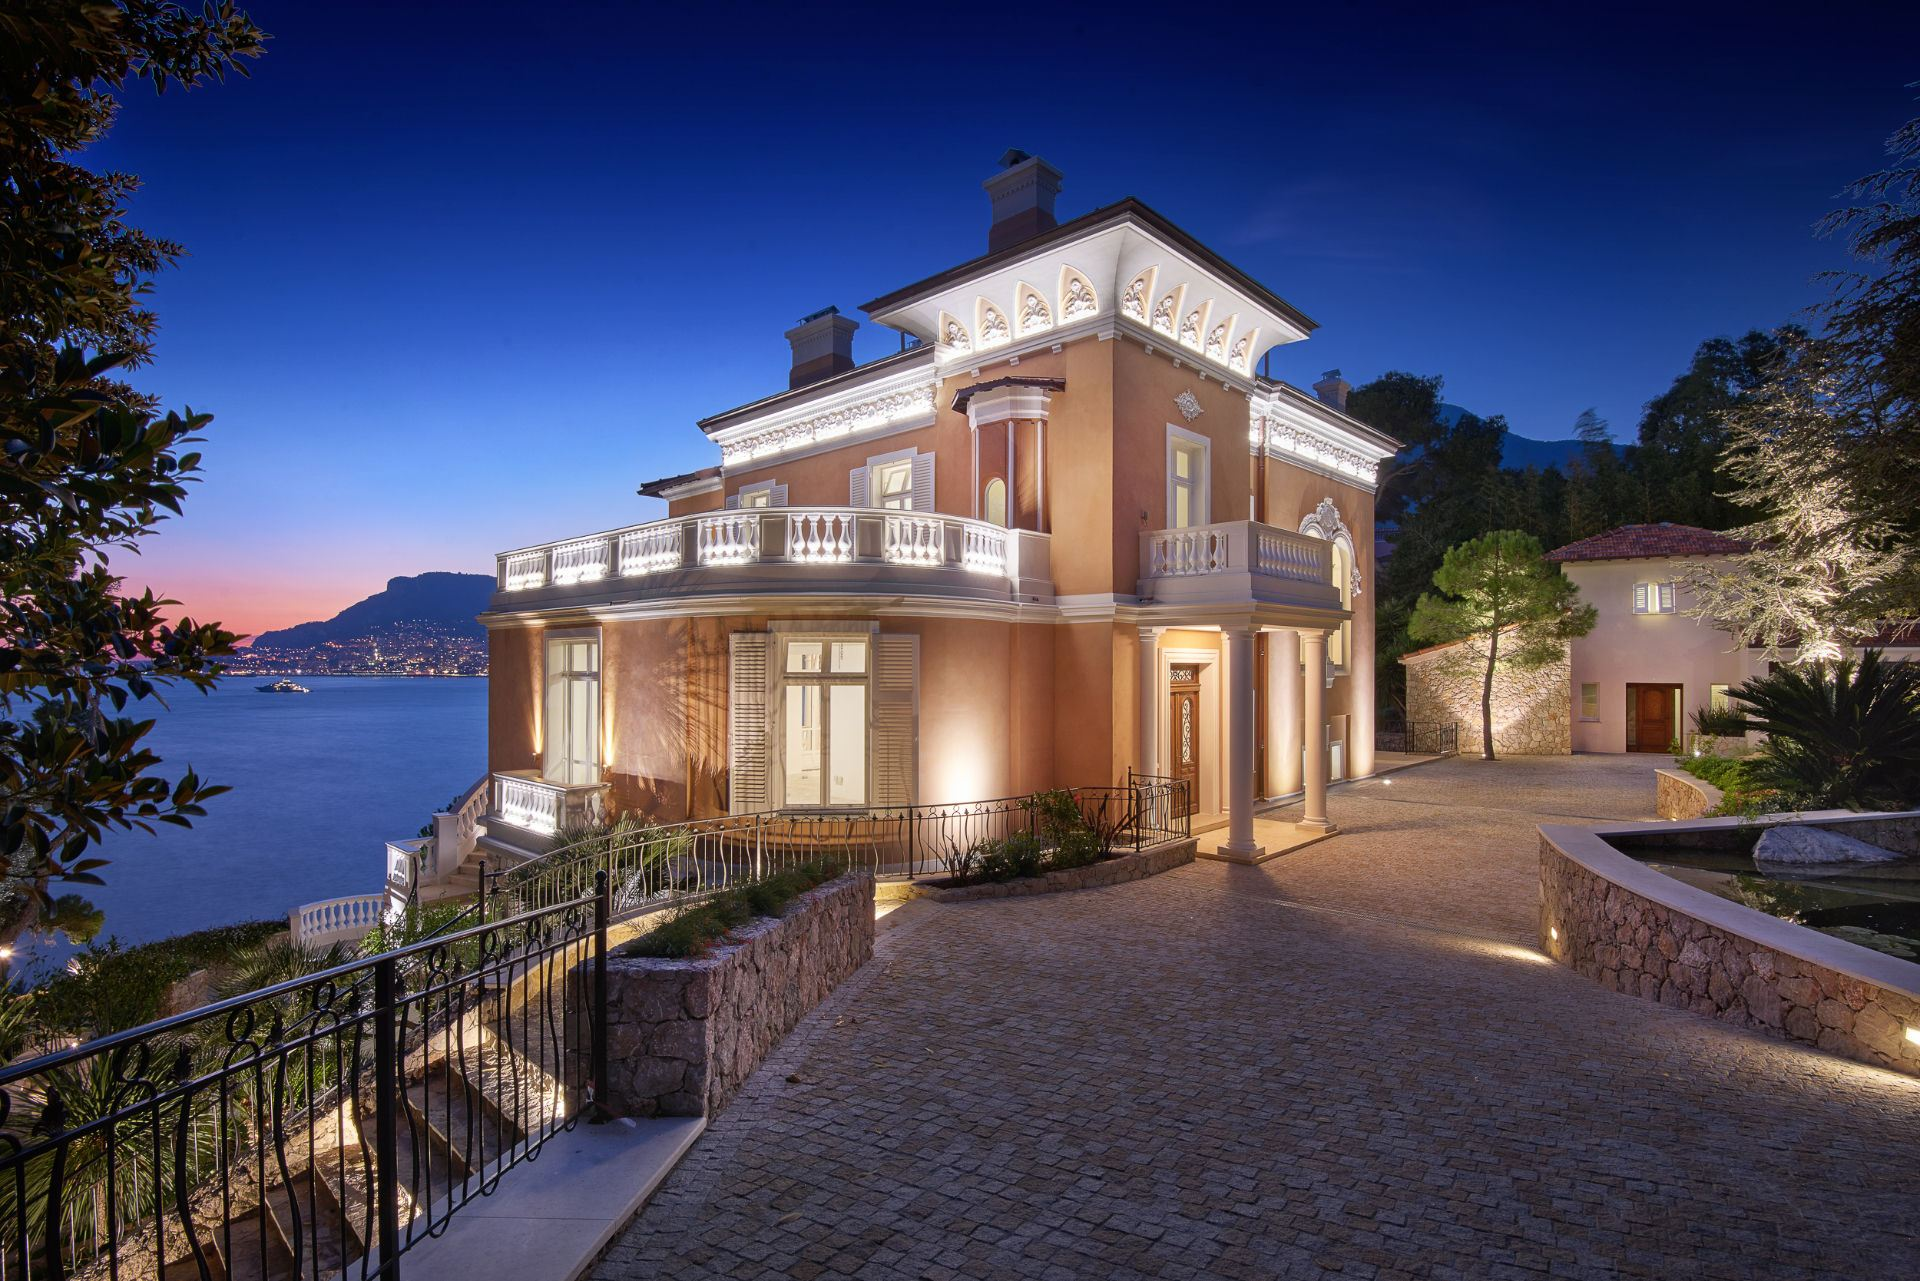 Single Family Home for Sale at Sole agent - Outstanding Belle Epoque 'waterfront' mansion Roquebrune Cap Martin, Provence-Alpes-Cote D'Azur 06190 France